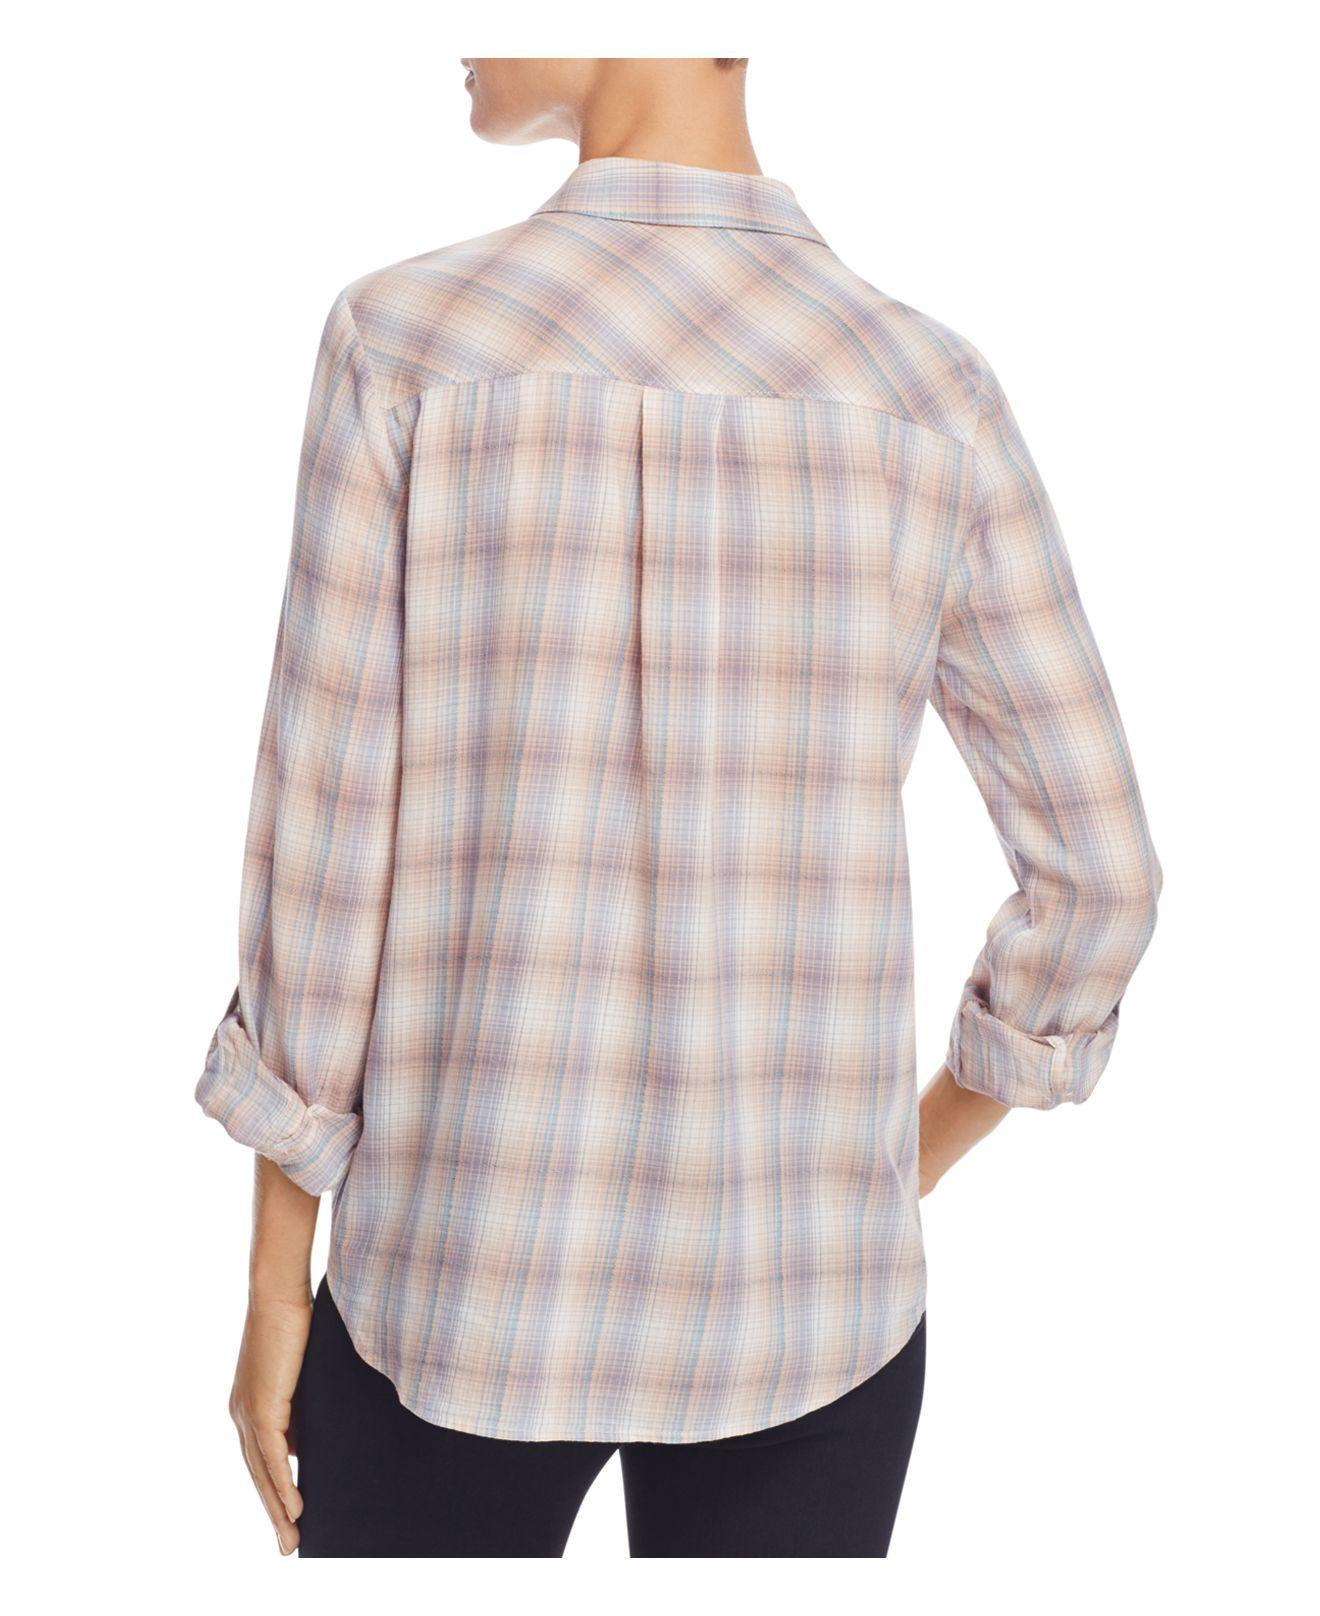 Lyst joie jerrie plaid button down shirt in gray for Grey plaid shirt womens